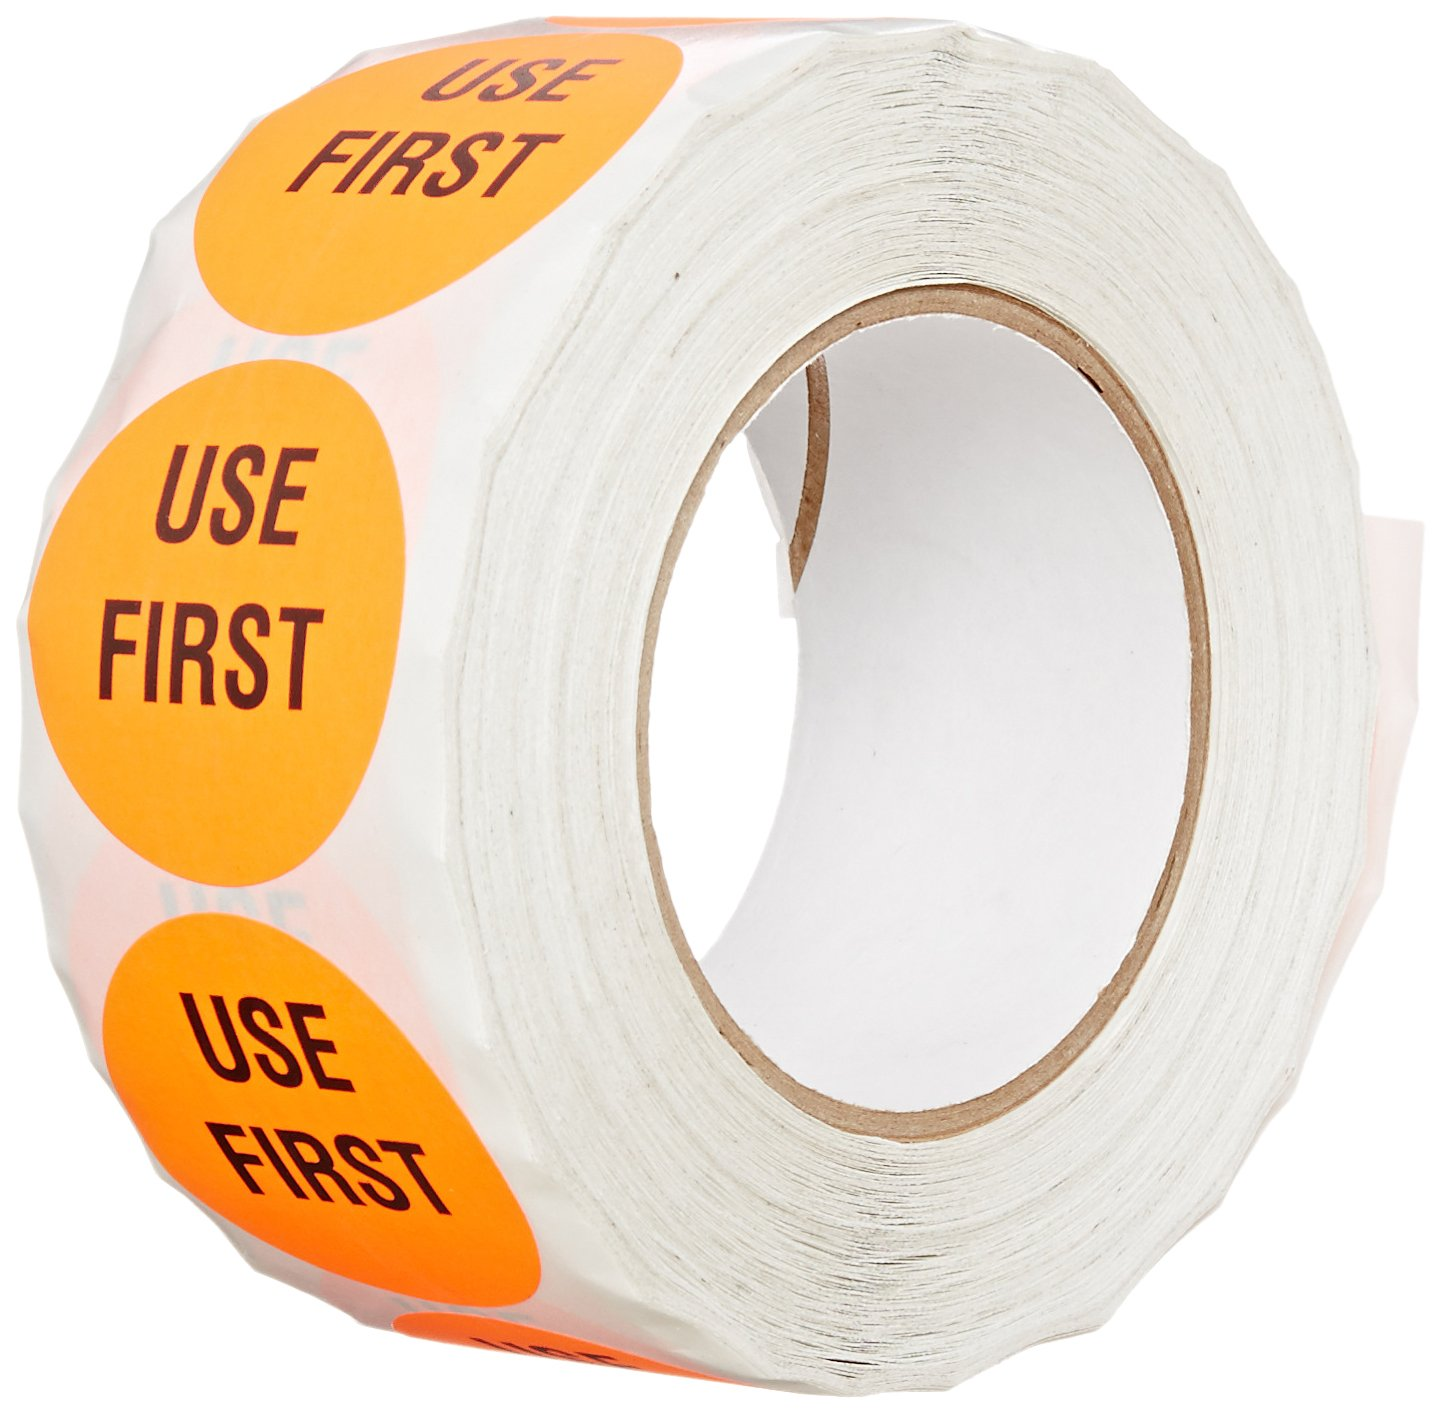 TapeCase INVLBL-037 Red'Use First' Inventory Control Label - 1000 per pack (1 Pack)